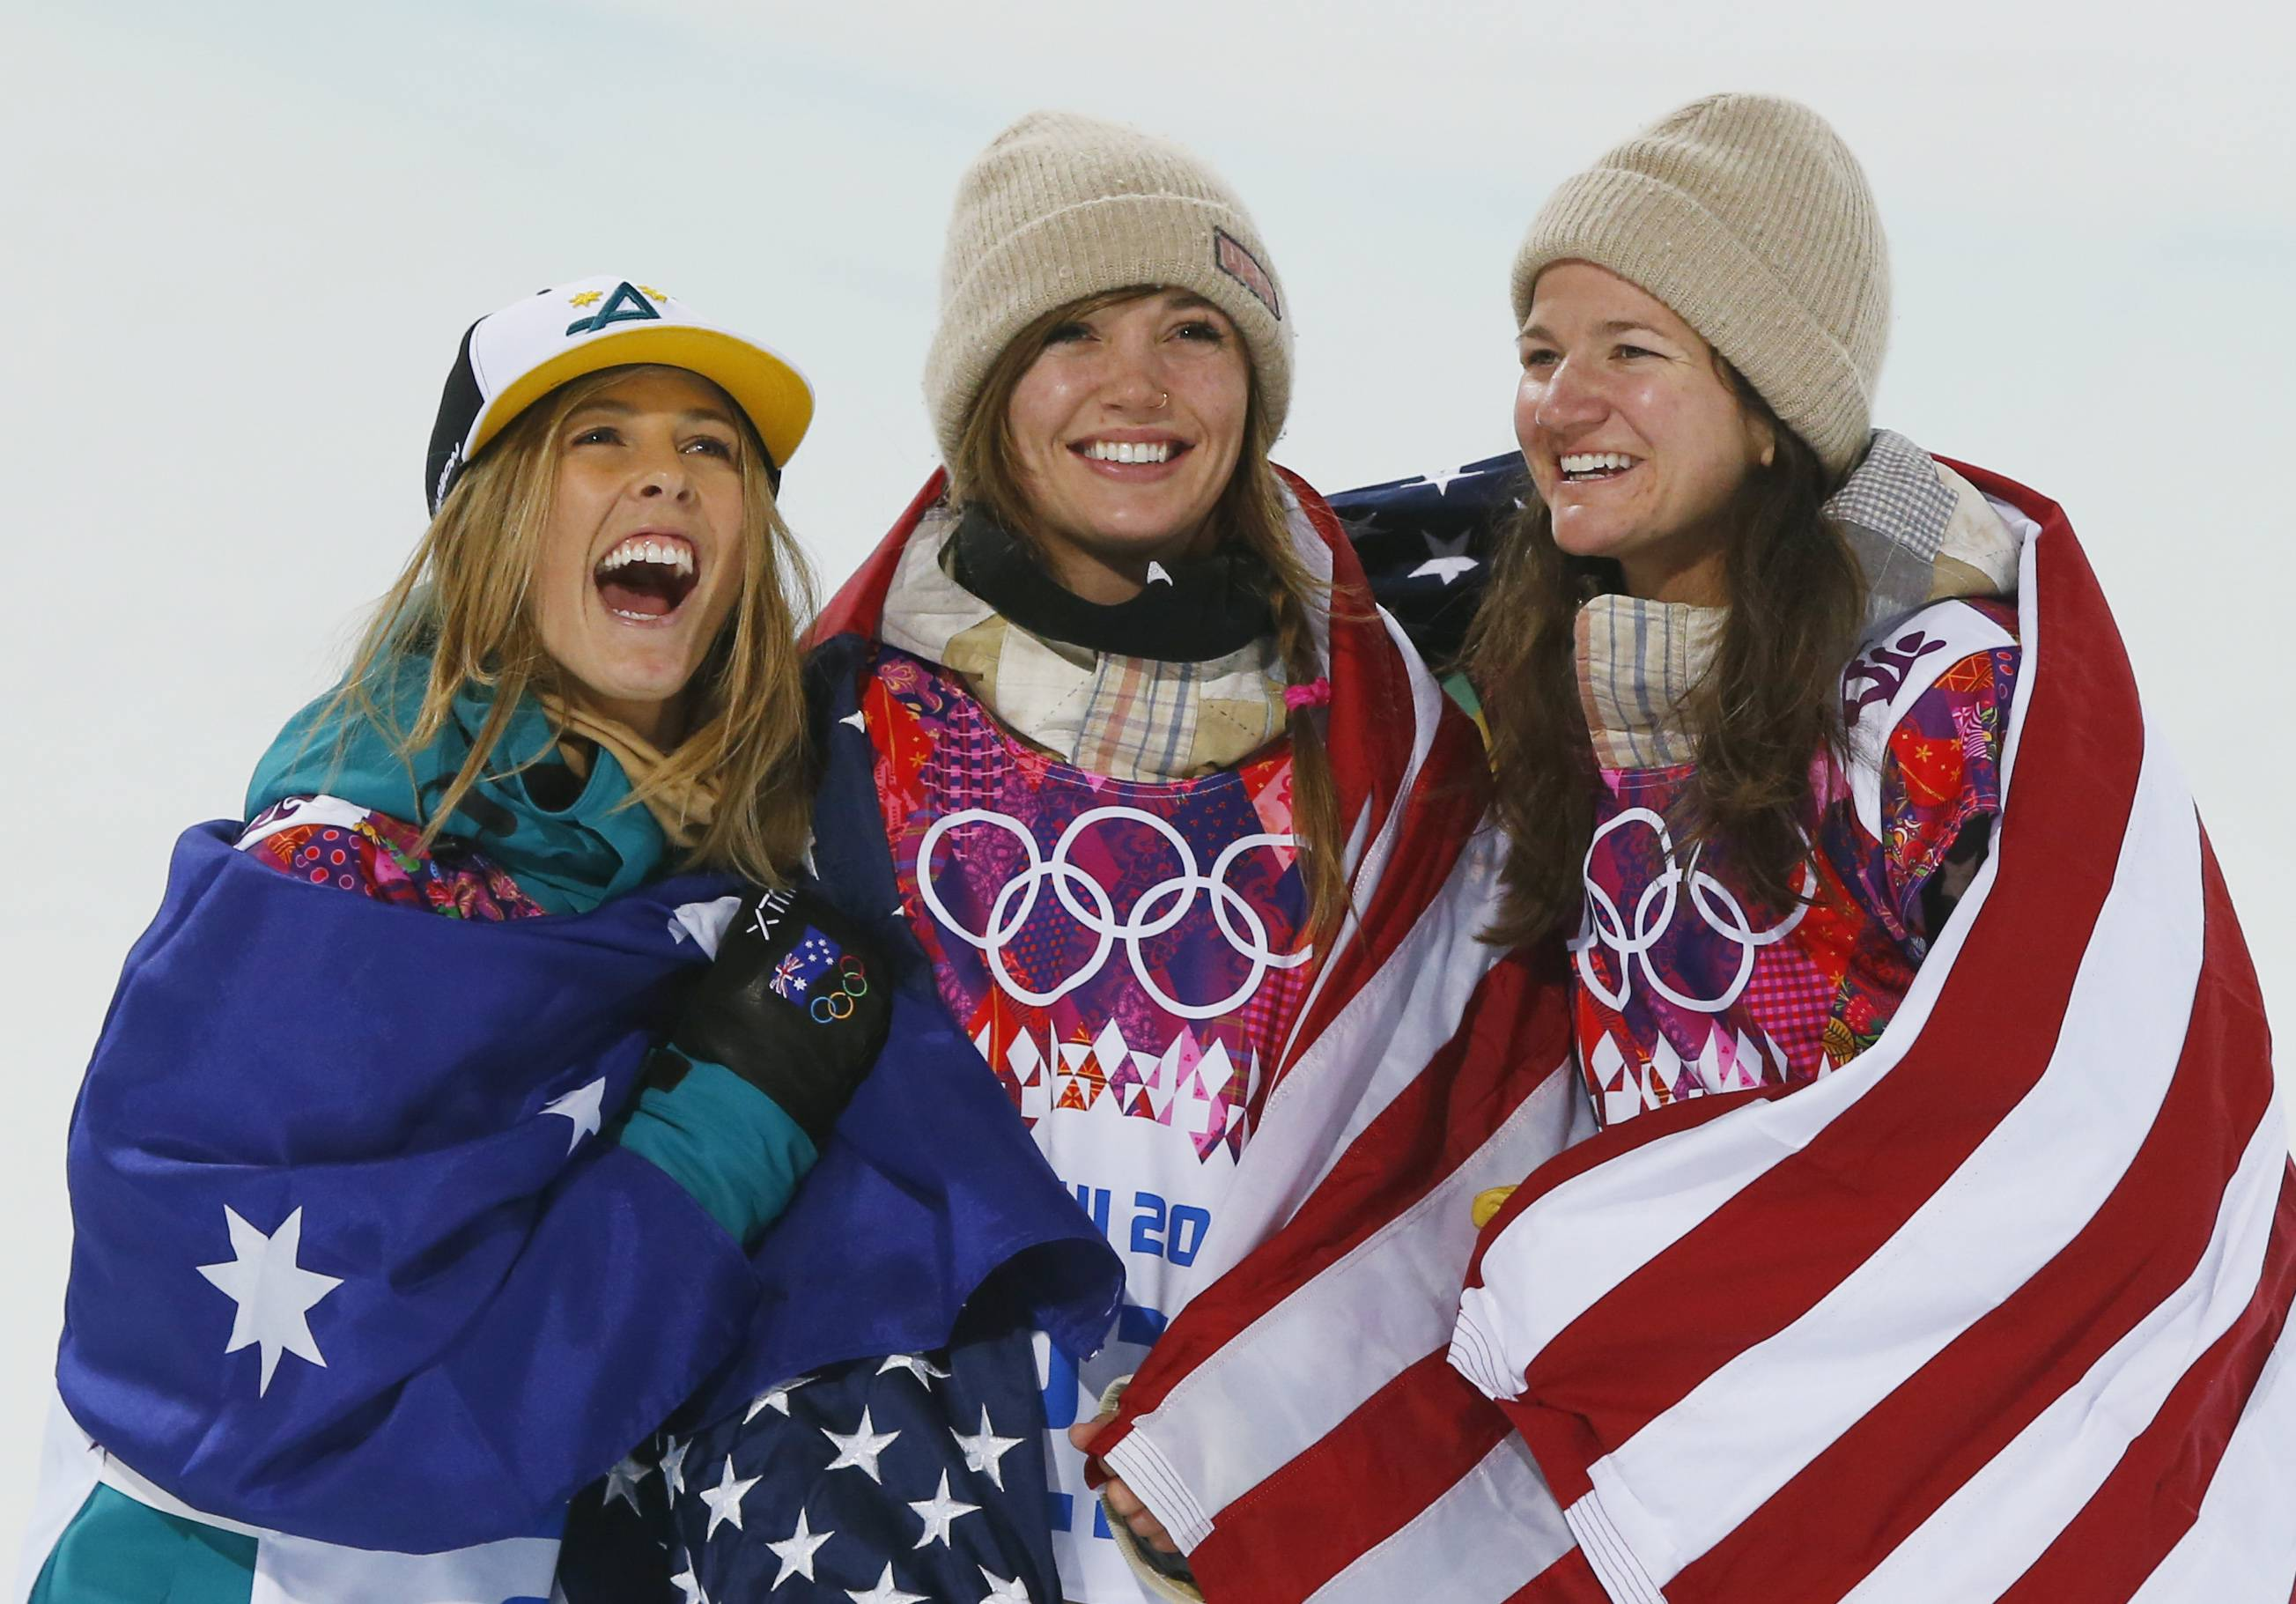 From left, silver medalist Australia's Torah Bright, gold medalist United States' Kaitlyn Farrington and bronze medalist United States' Kelly Clark pose following the women's snowboard halfpipe.